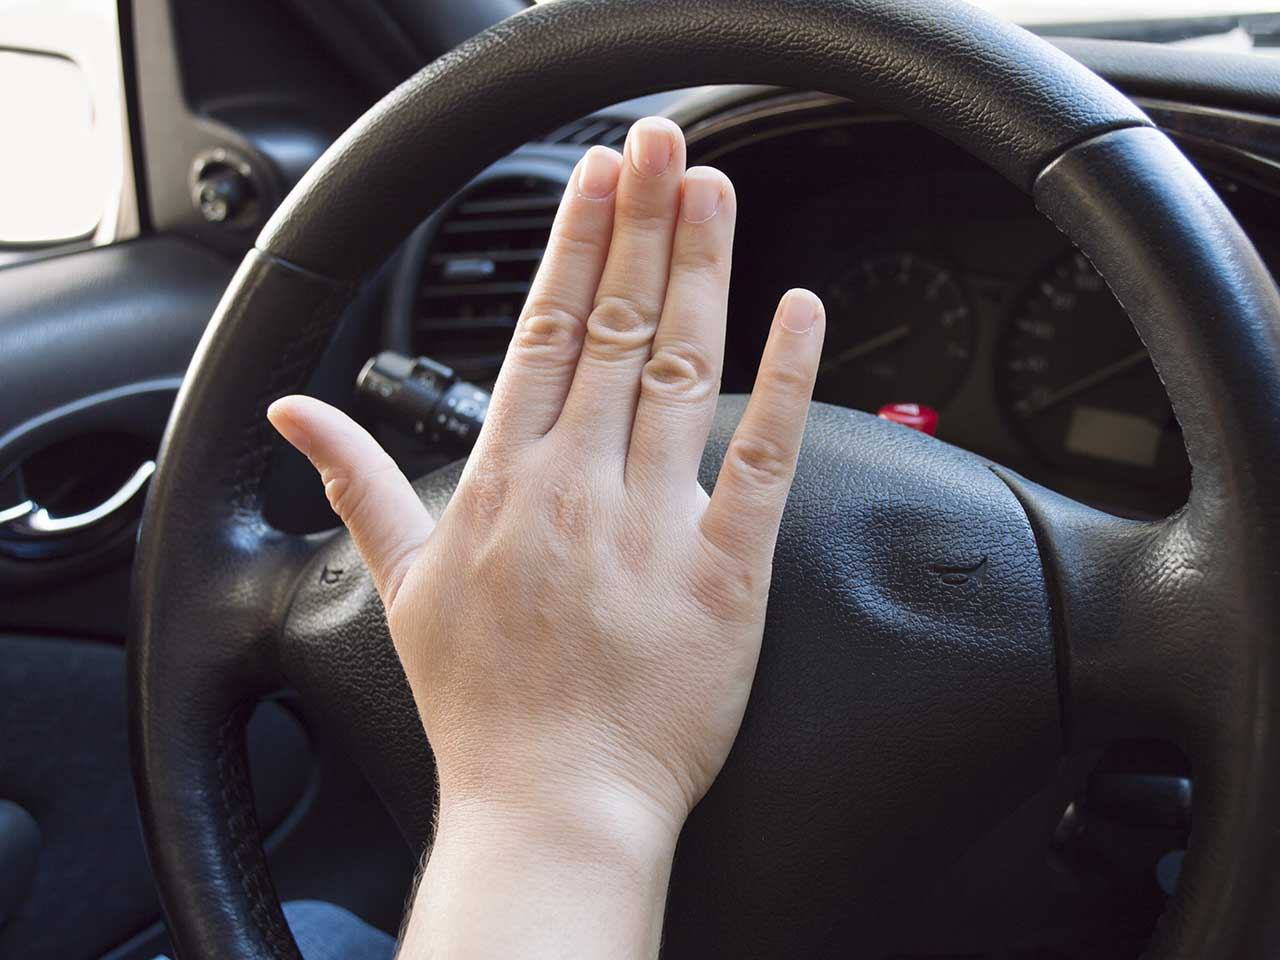 Driving slamming fist on the car horn to show frustration in an act of road rage